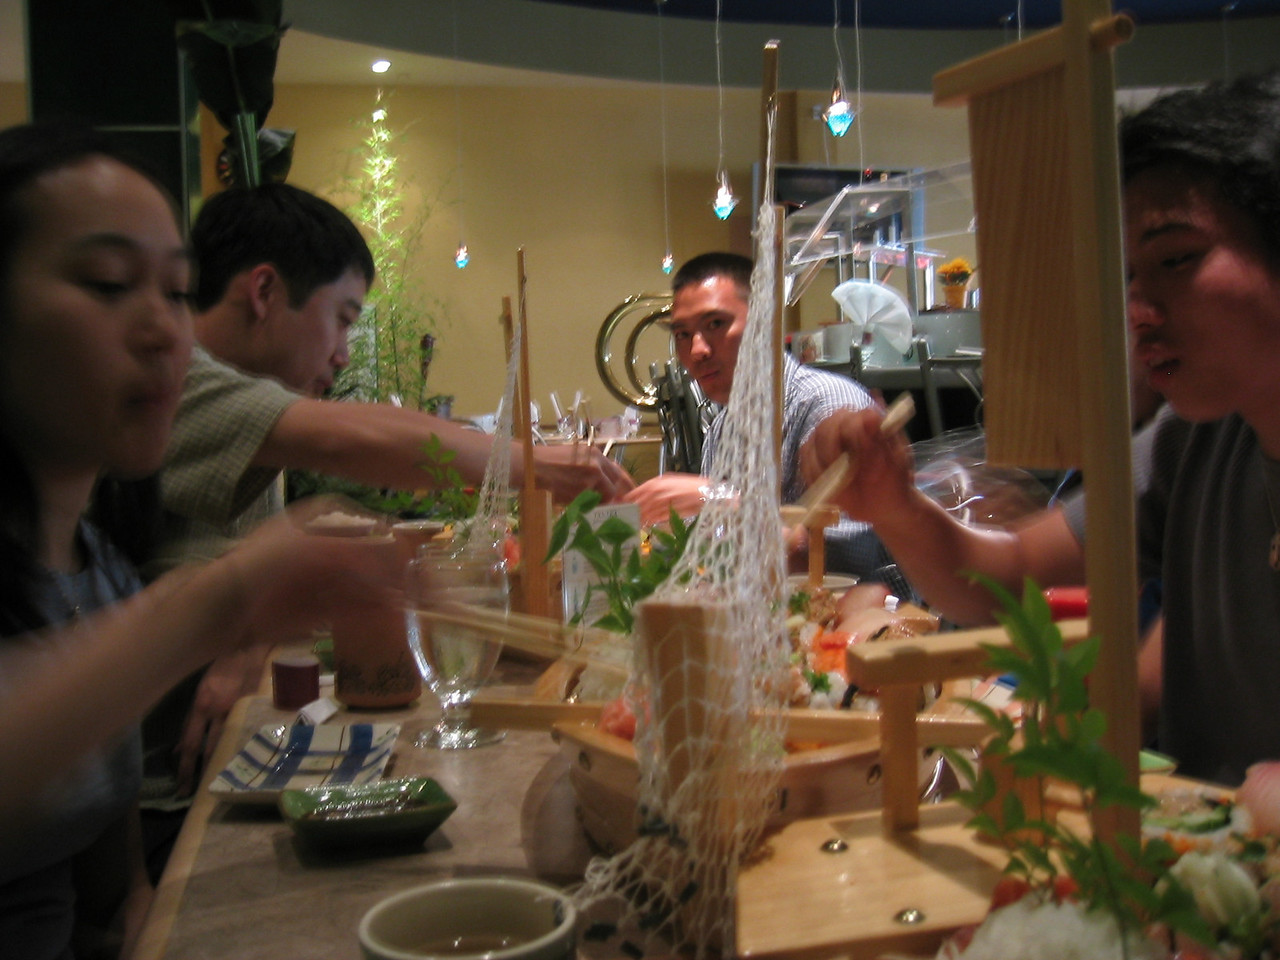 Melissa's welcome back dinner @ Tanaka Sushi - downstream view of Alan, Sunday 2003 07 20